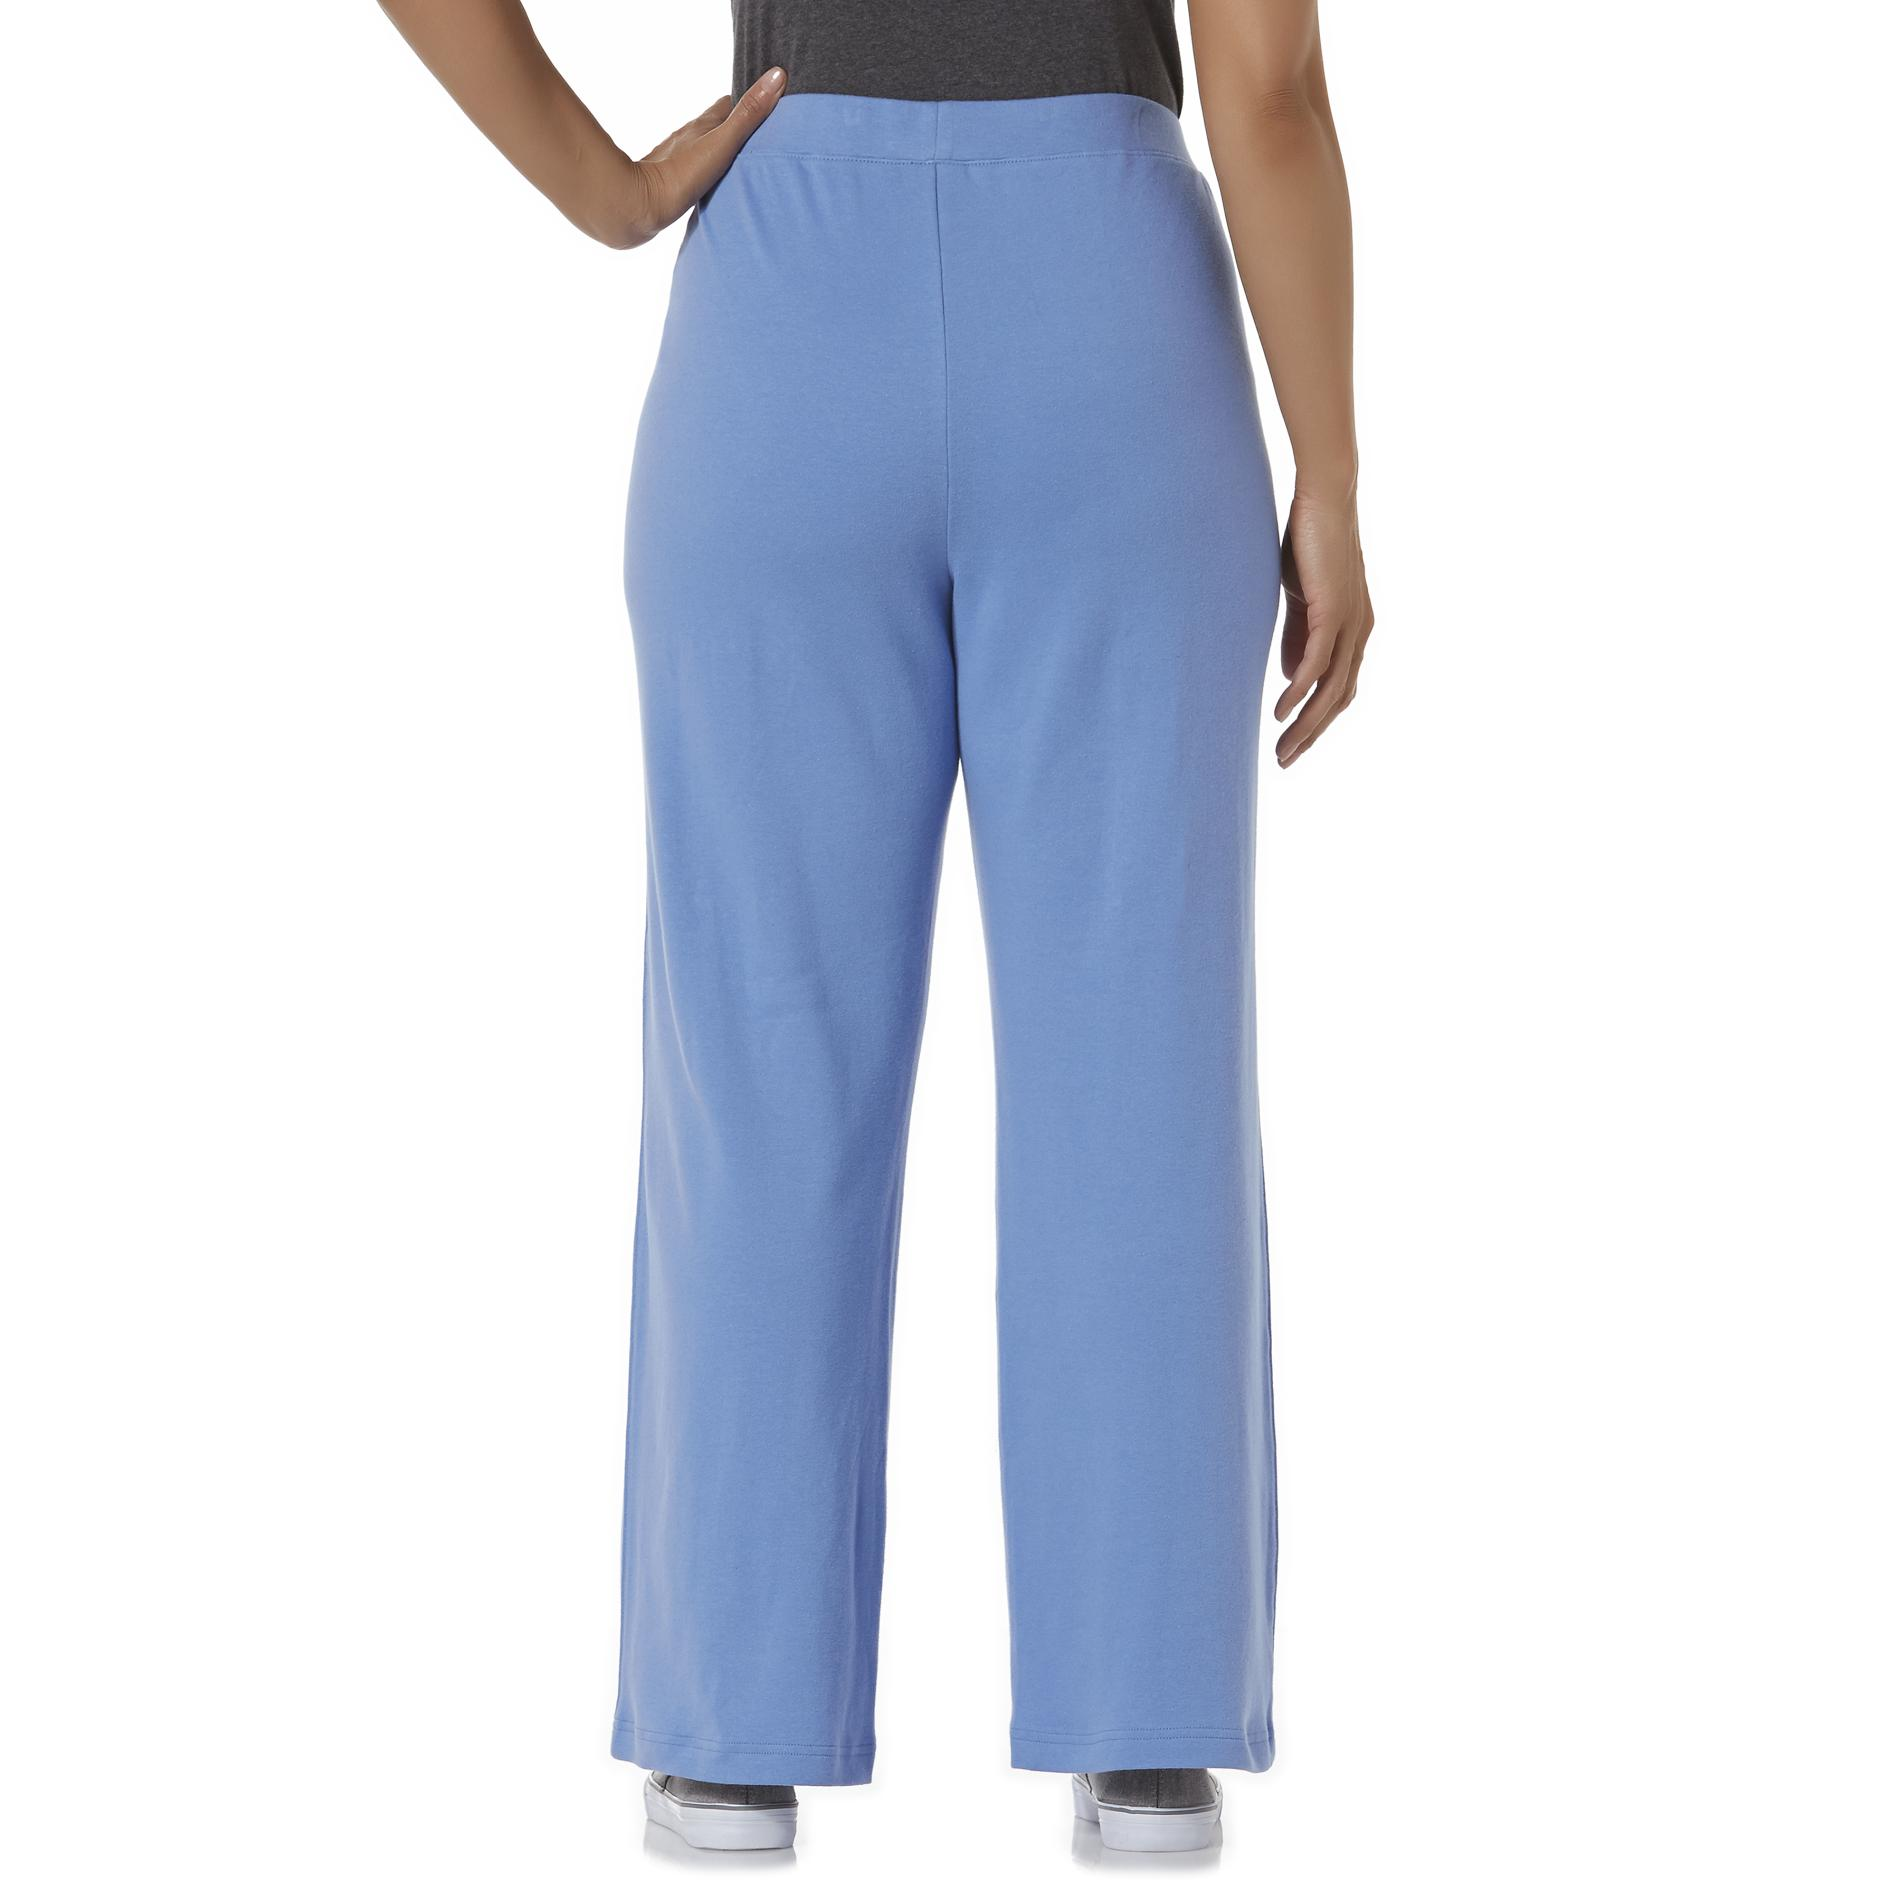 Basic Editions Women's Plus Knit Pants